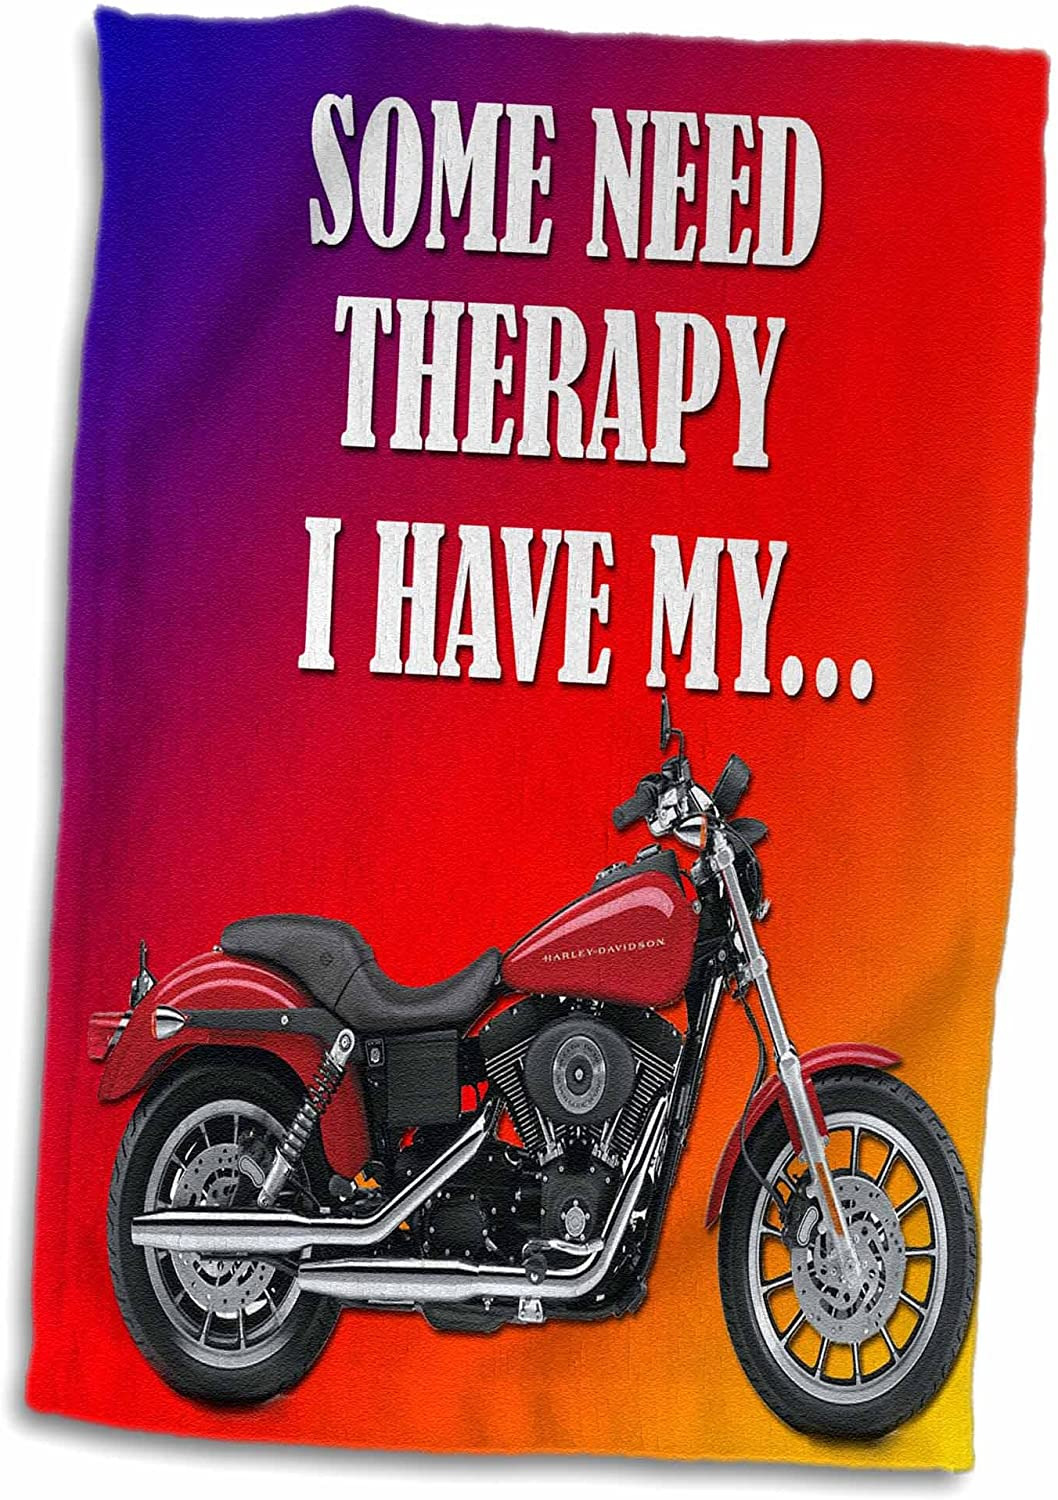 """Harley Davidson Bathroom Decor Luxury 3d Rose some Need therapy Picturing Harley Davidson Cool Bike Hand towel 15"""" X 22"""""""